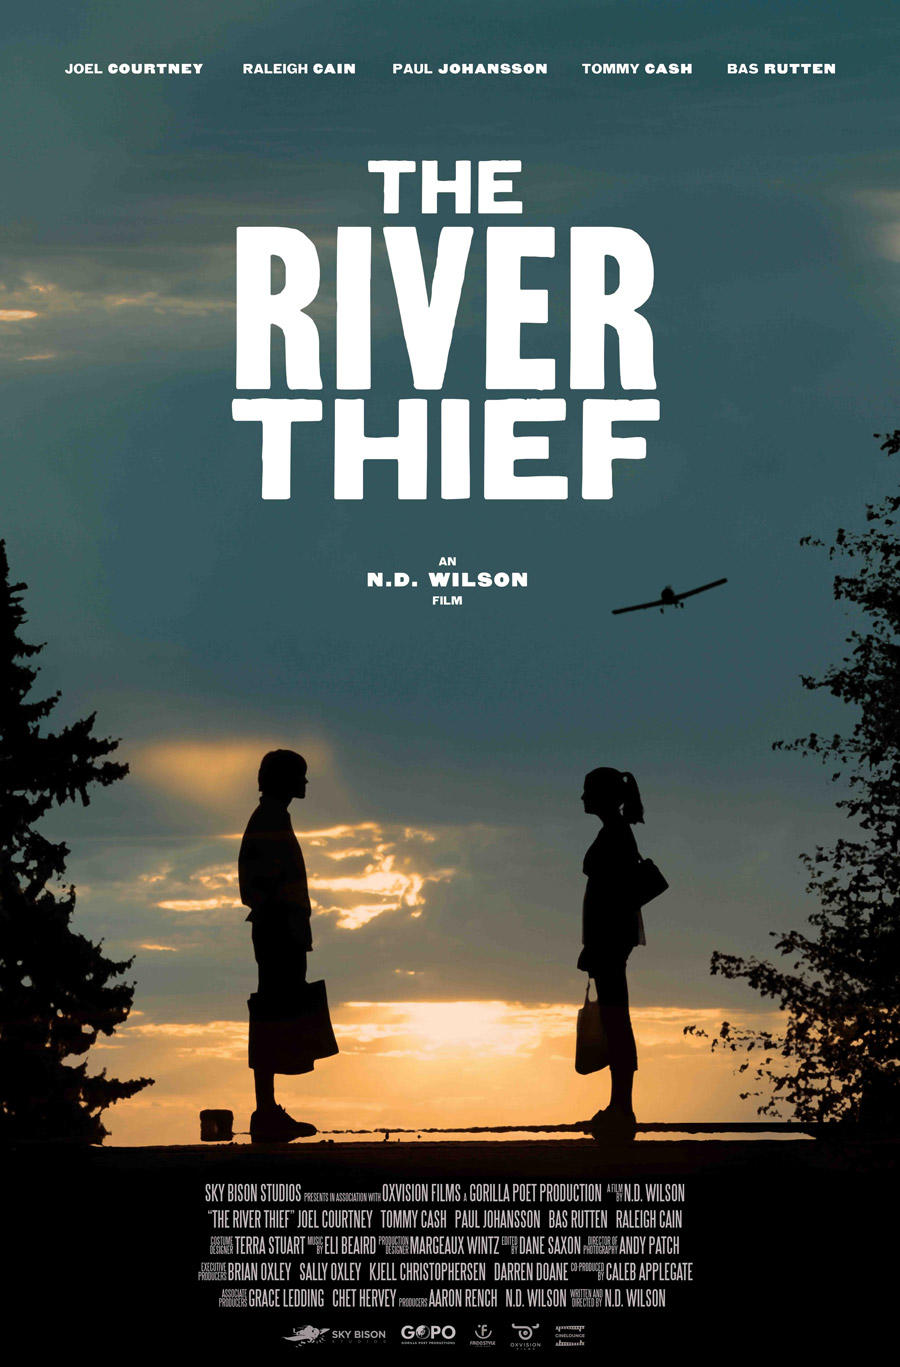 The River Thief poster art